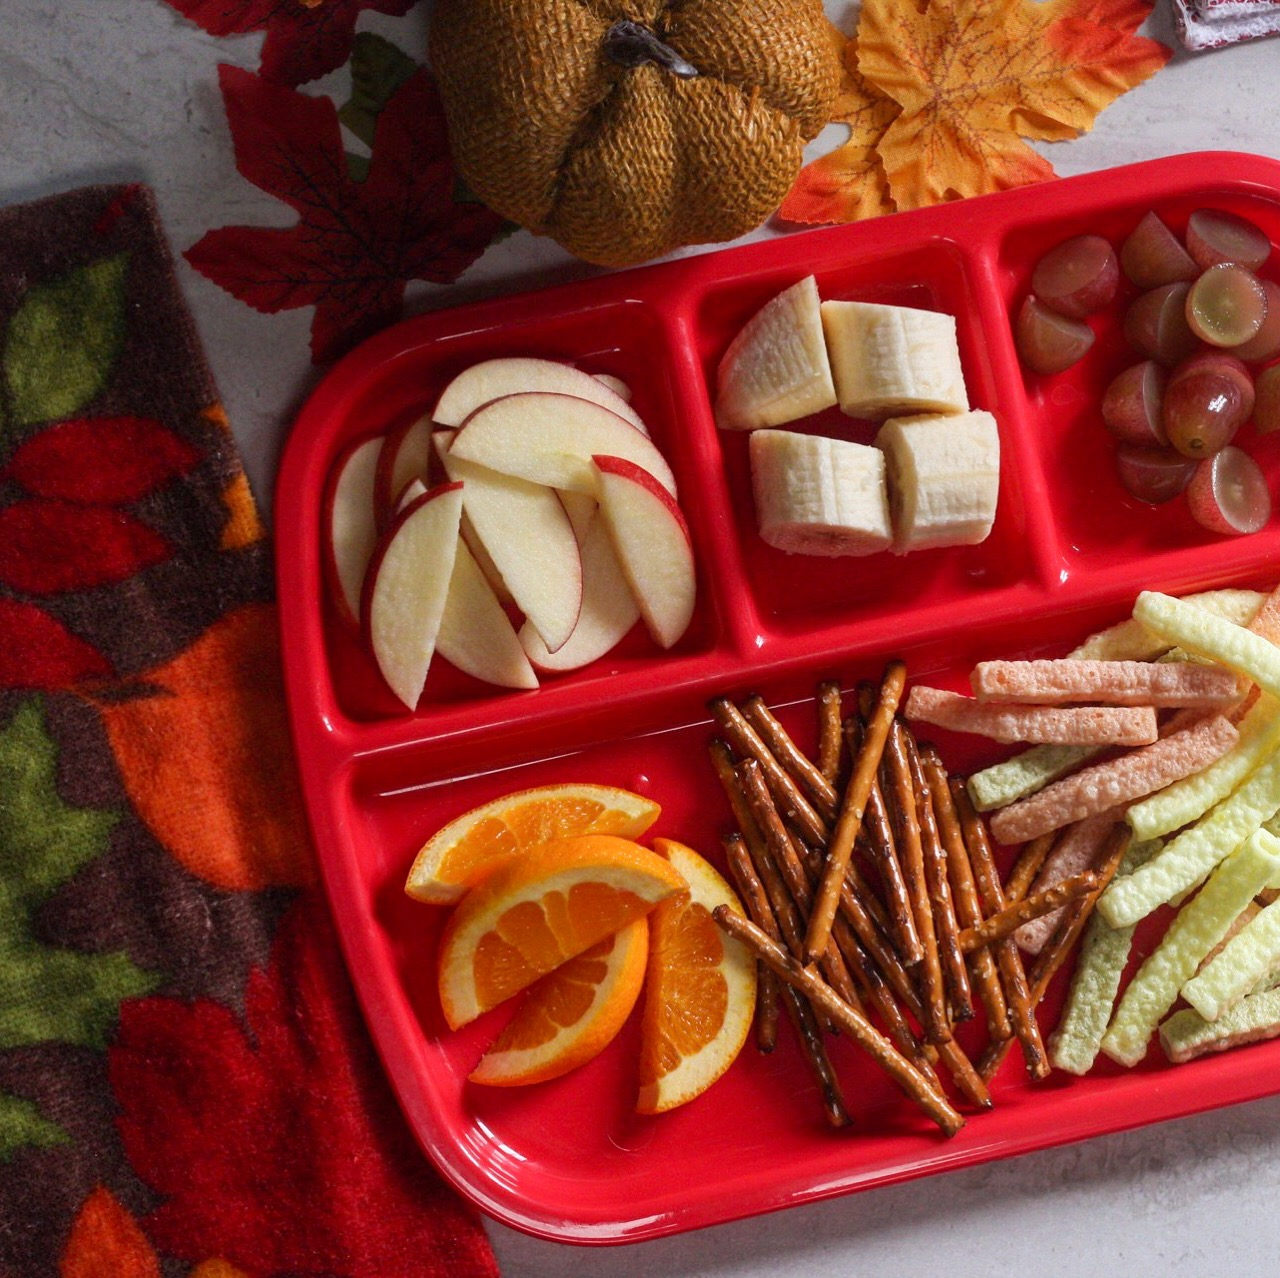 busy toddlers at home? make a snack tray to help keep them out of the kitchen! i find this super helpful. - Oranges, pretzel sticks, veggie straws, grapes, banana slices, and apples!